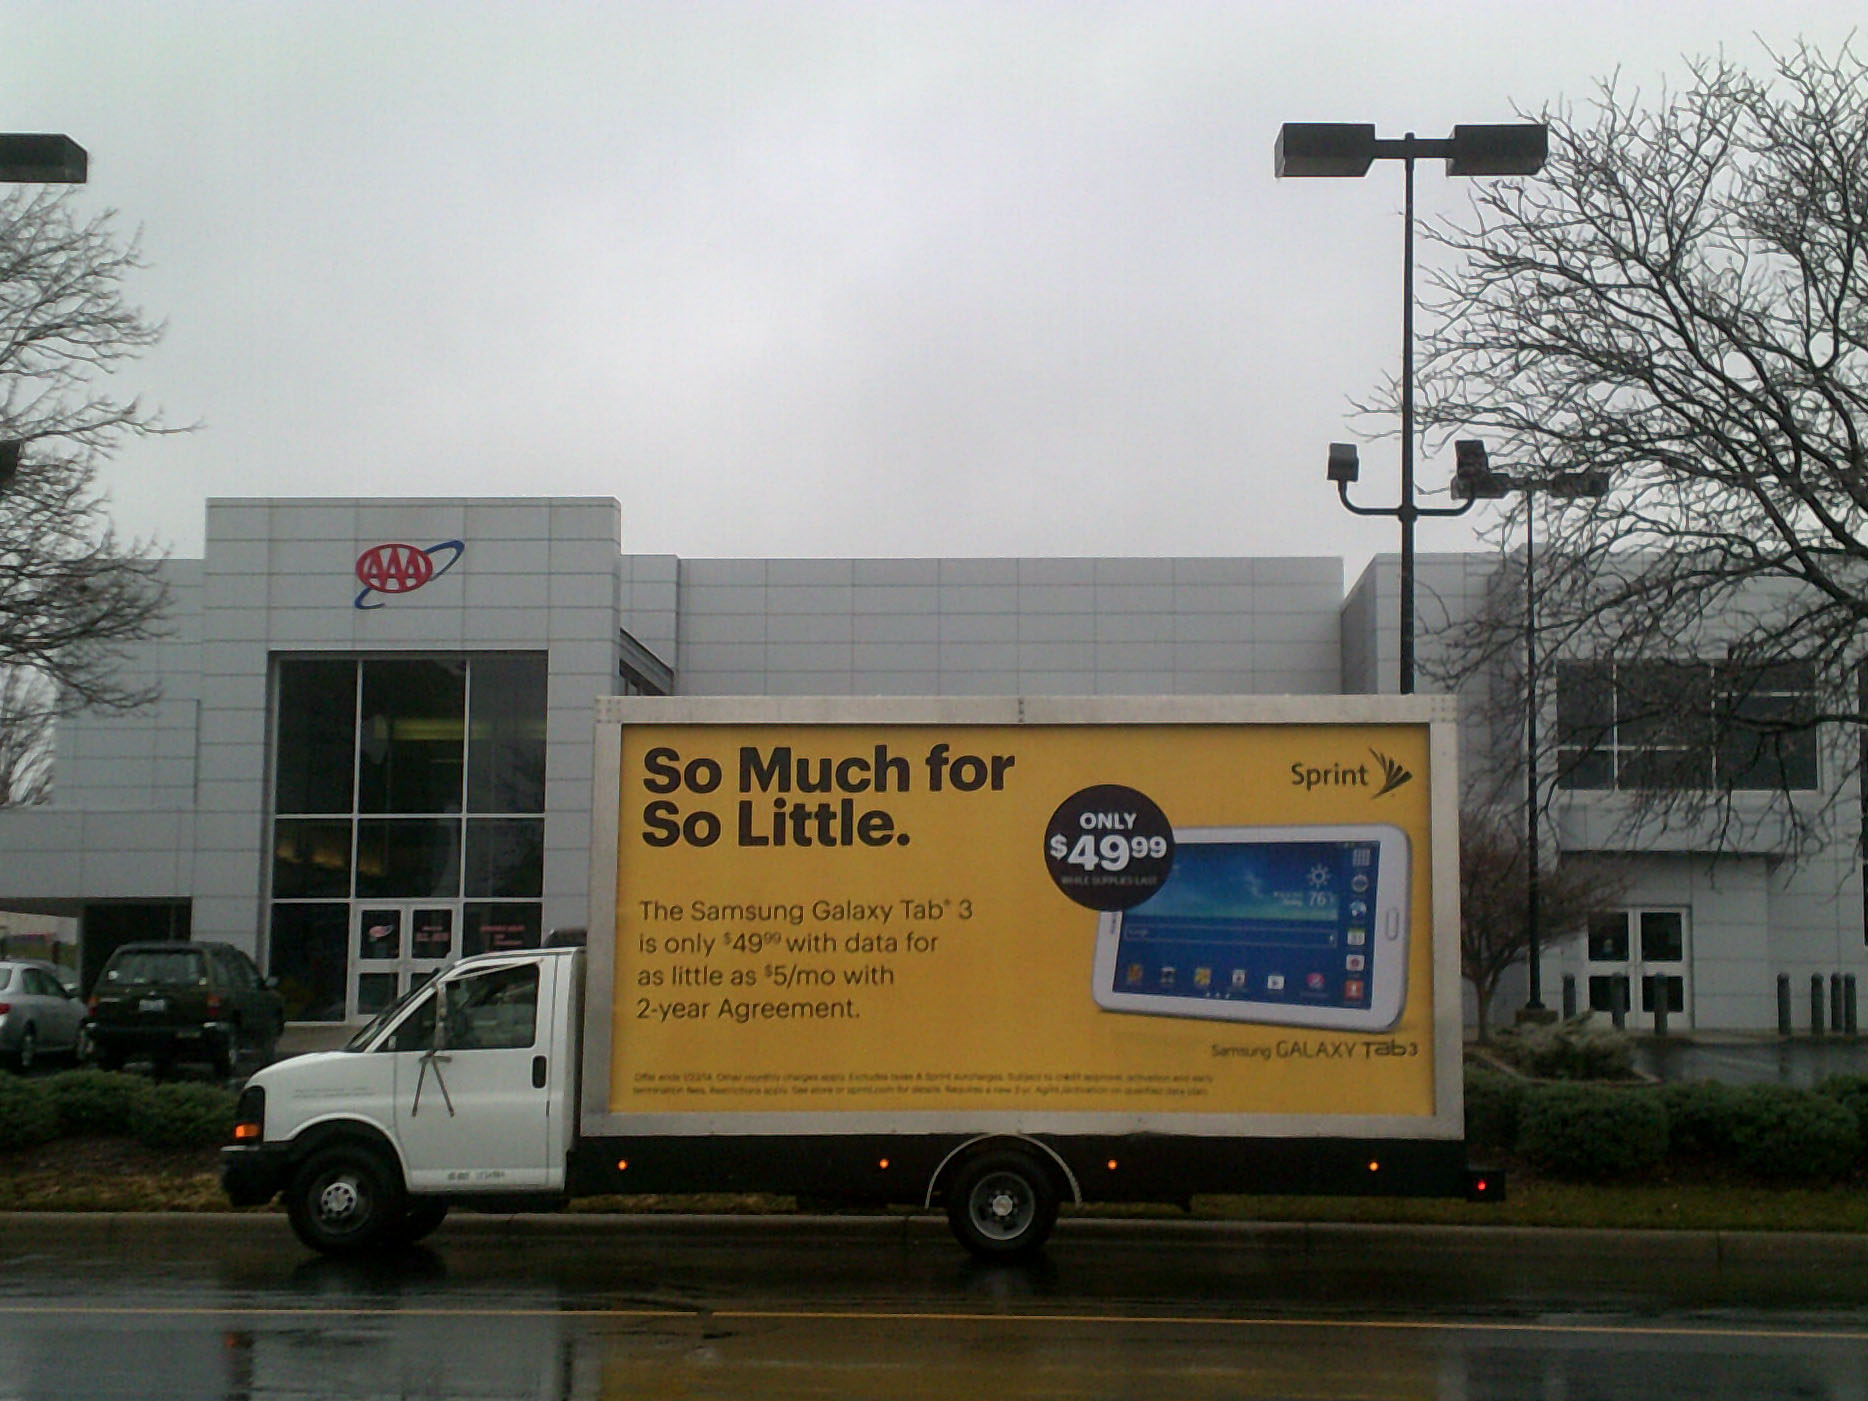 Mobile Billboard Advertising in Indianapolis, IN